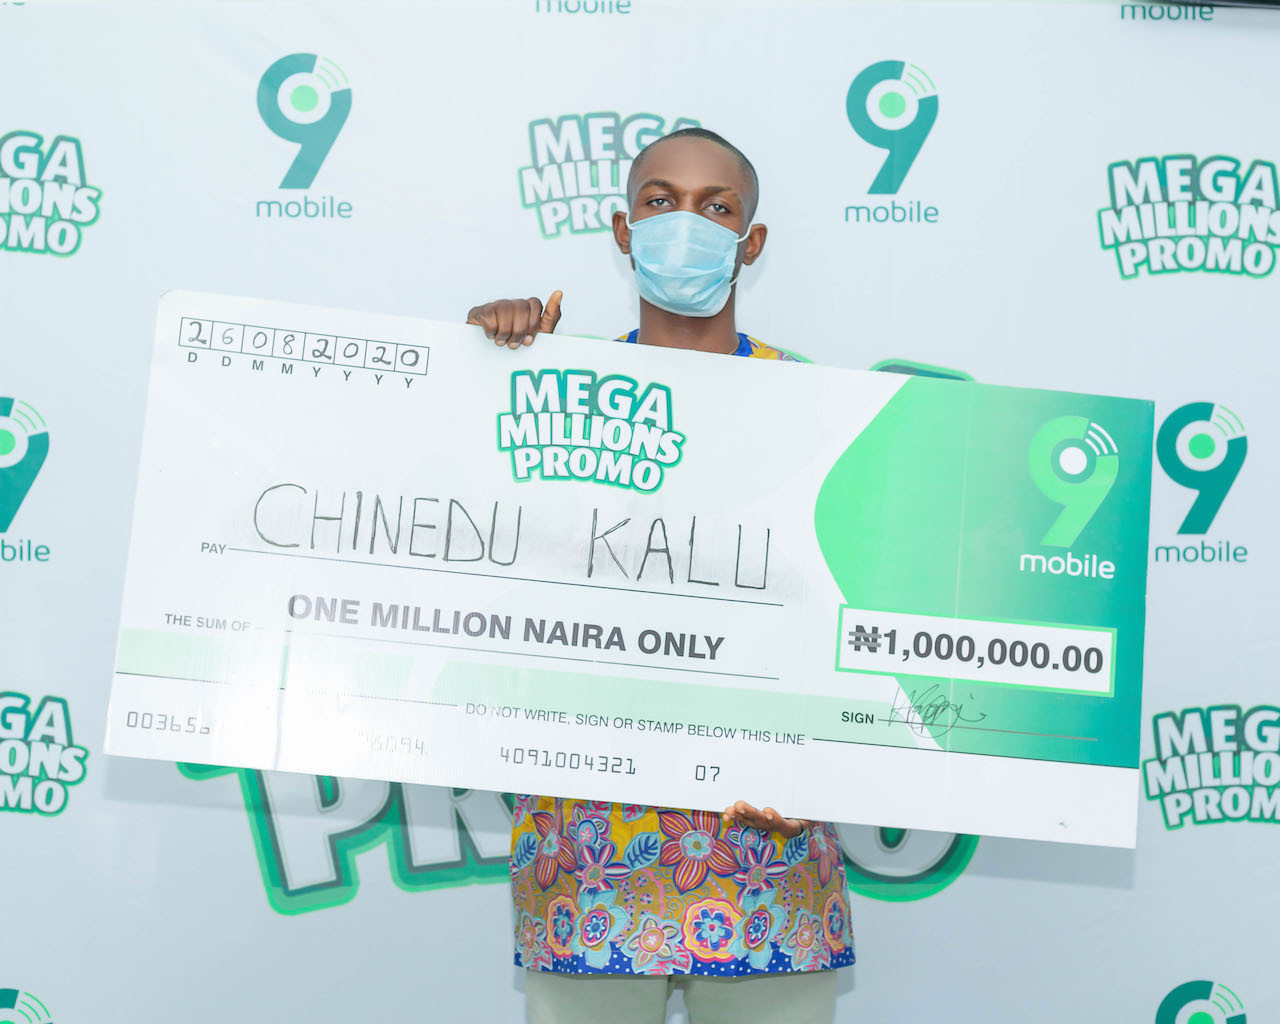 9mobile Mega Millions Promo Enugu winner to start a masters degree with prize money lindaikejisblog3